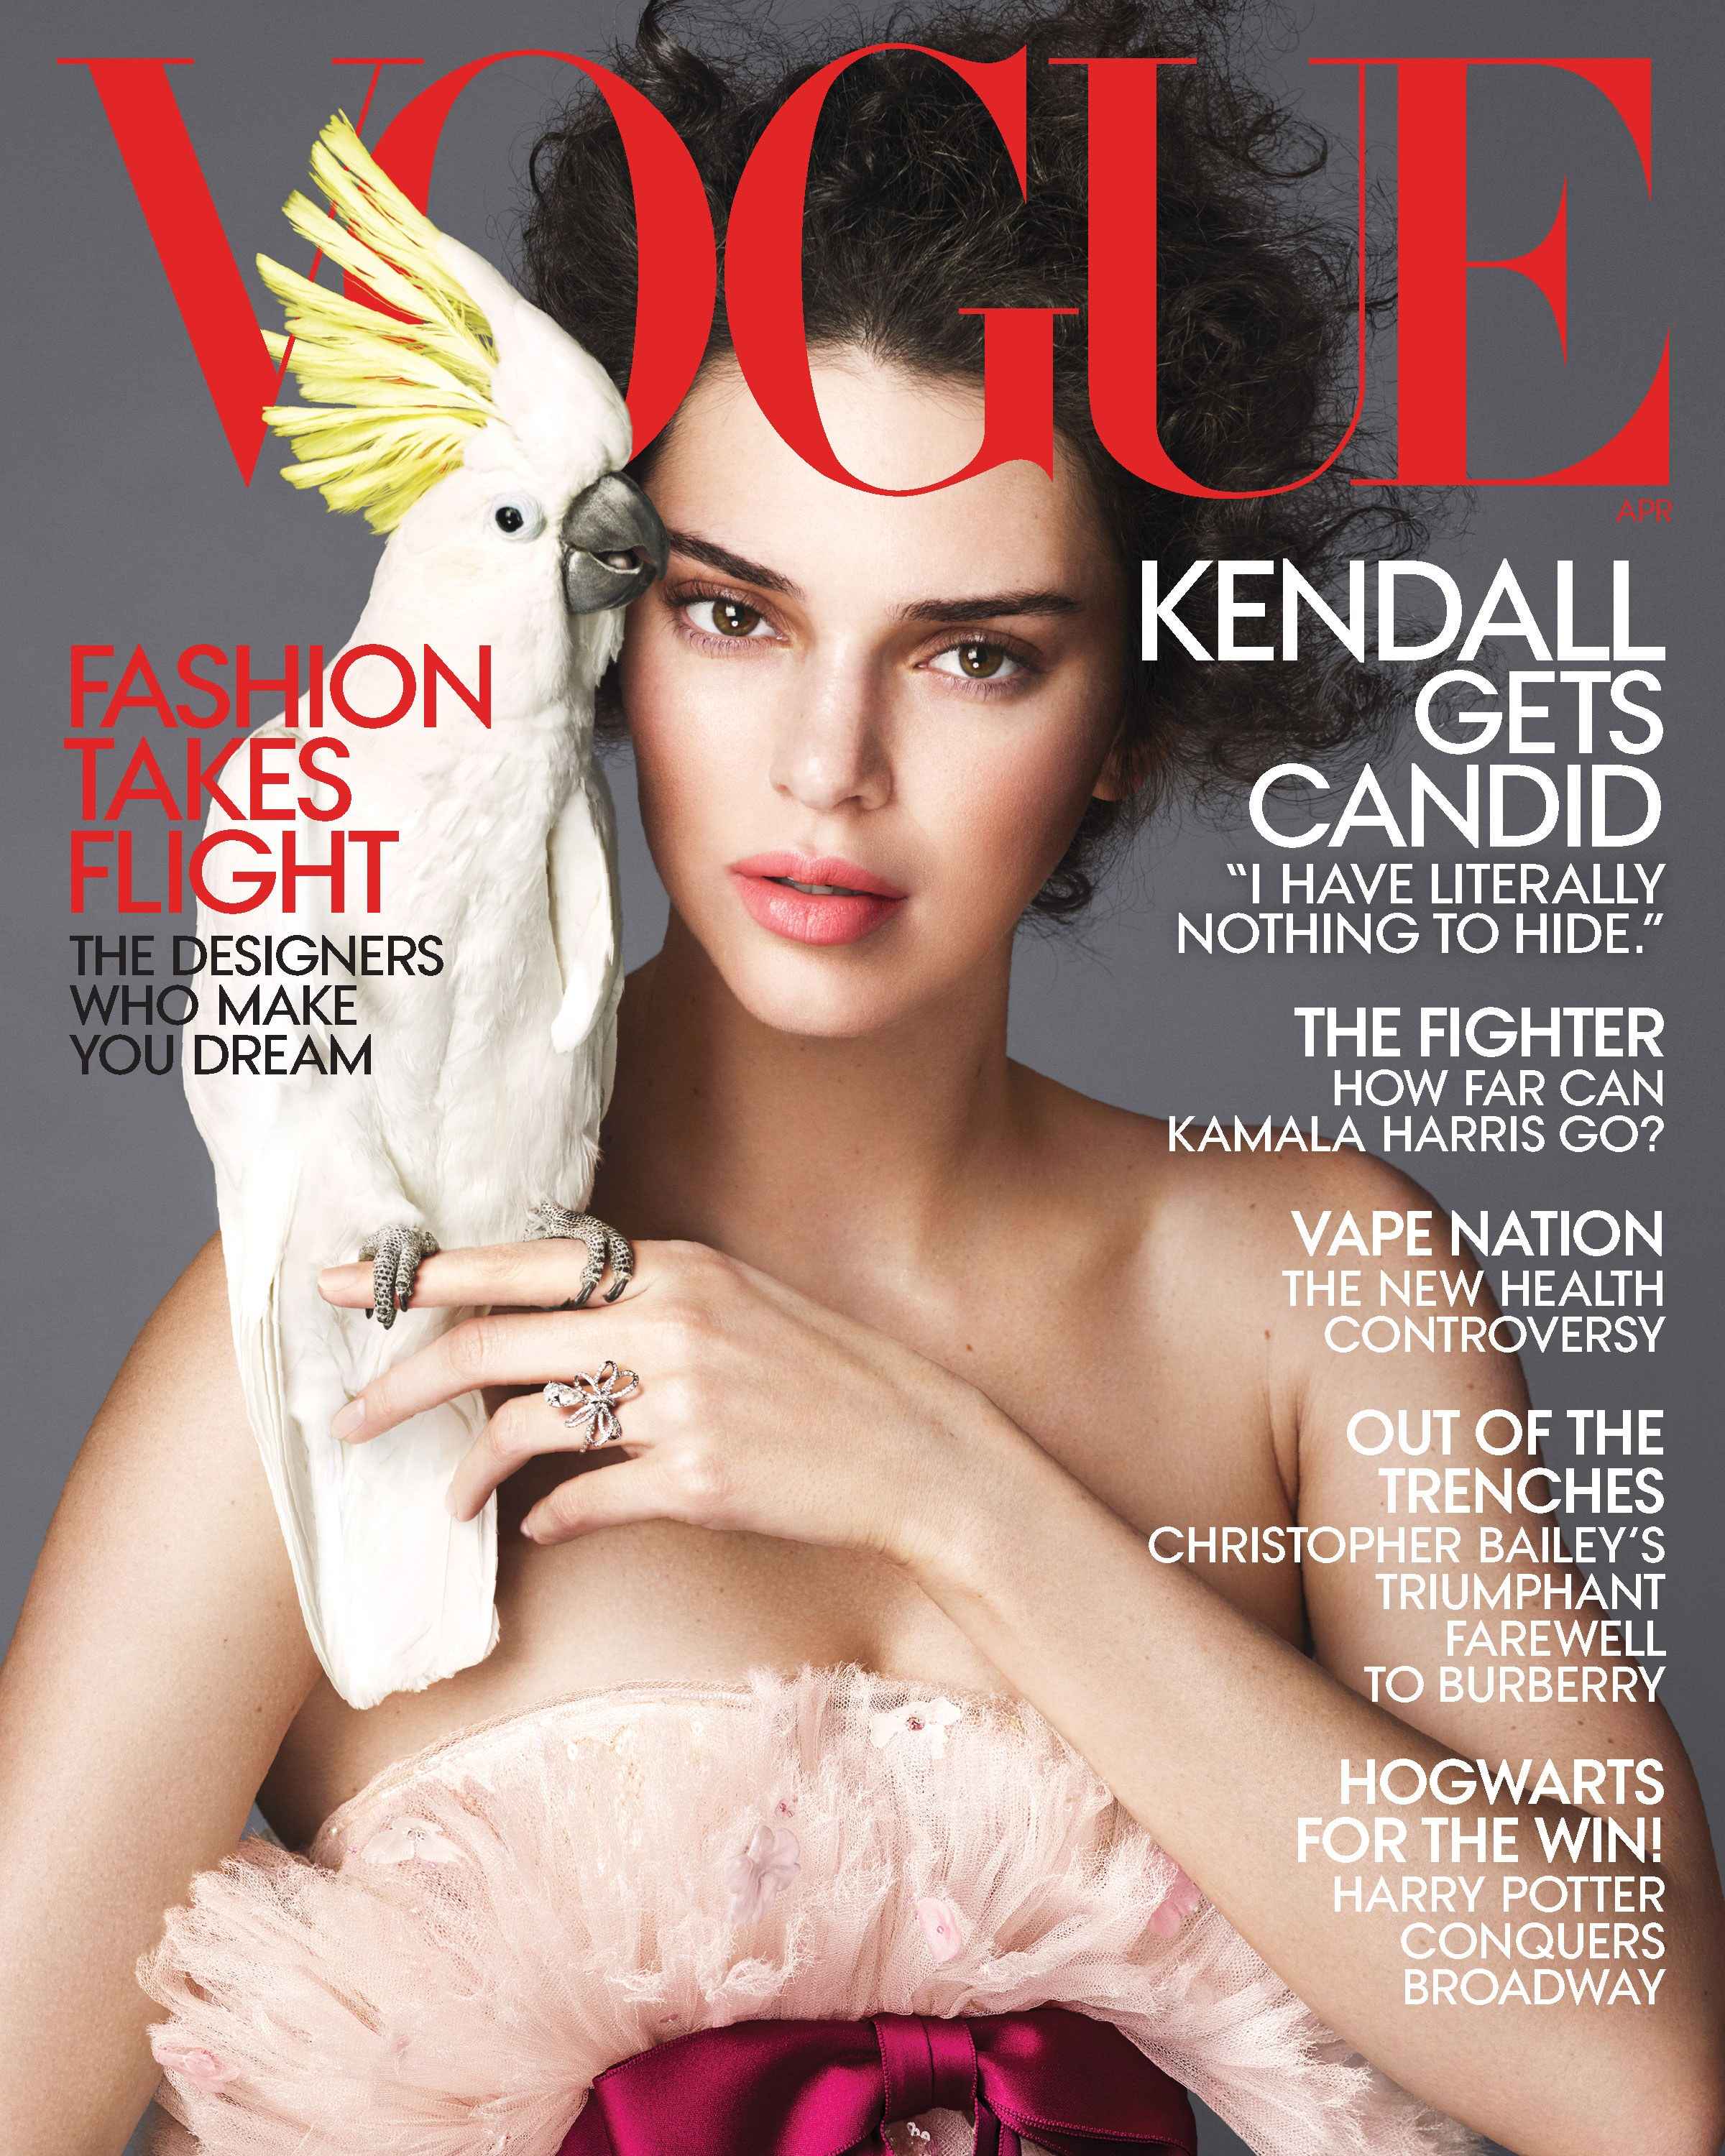 Beautiful American Fashion Model Kendall Jenner Modeling For The Cover Of Vogue Magazine Modeling As The Highest Paid Model In The World. The World's Highest Paid Model. The Top Earning Model In The World.